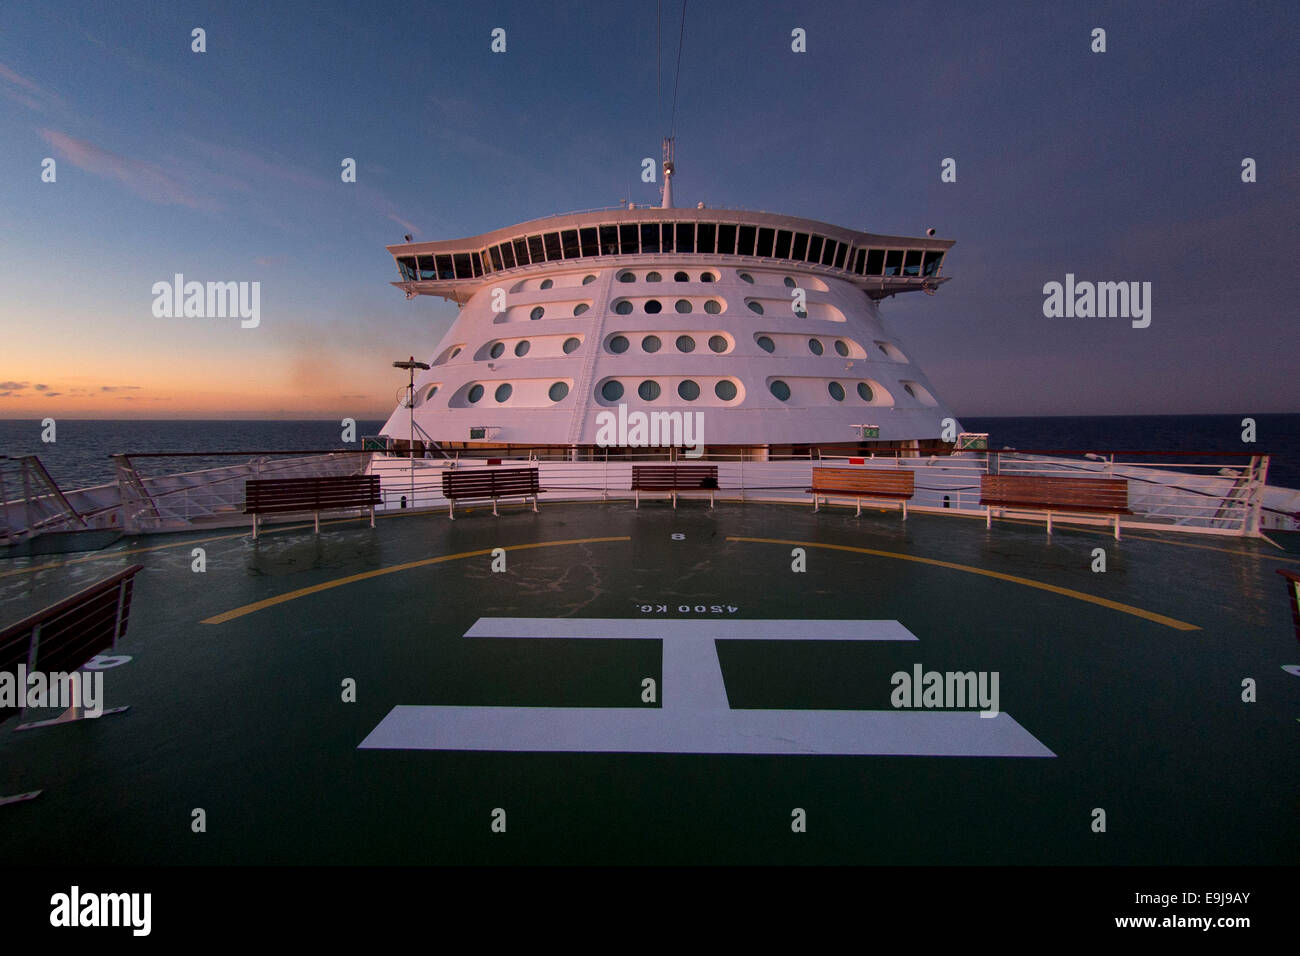 The front (bow) of Royal Caribbean's ship the Adventurer of the seas. - Stock Image